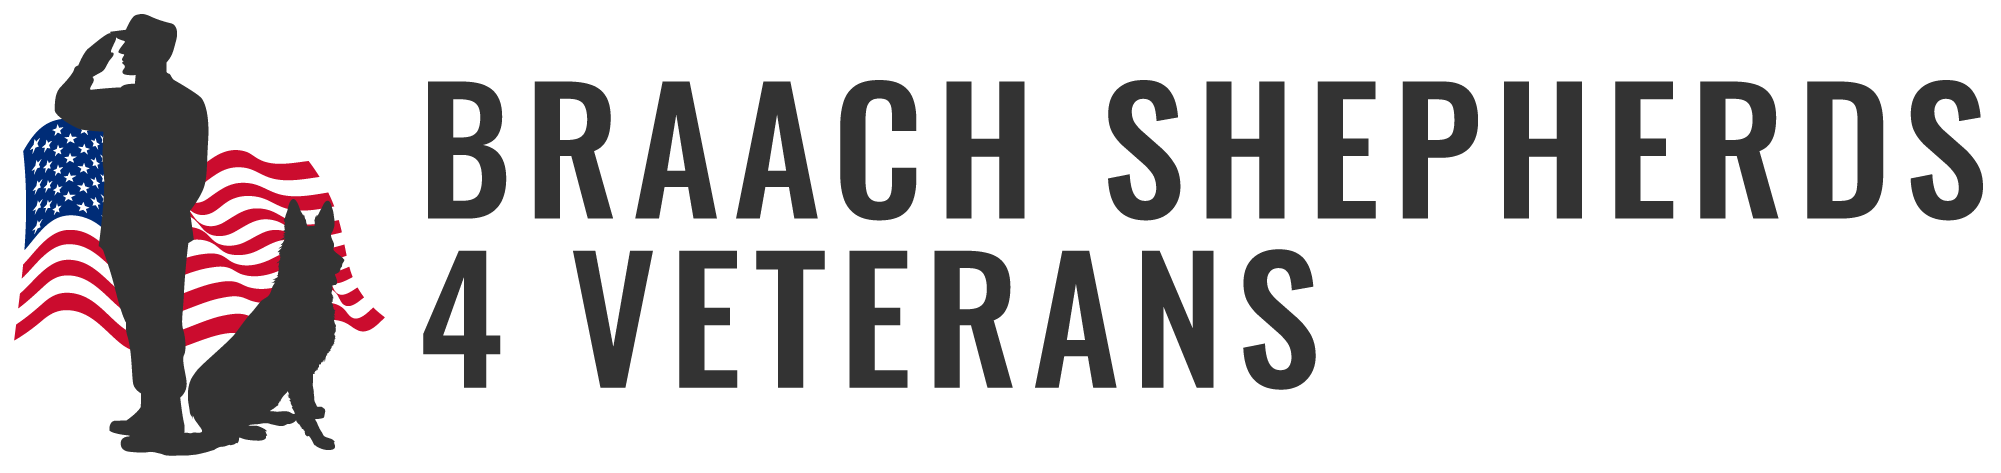 Braach Shepherds 4 Veterans